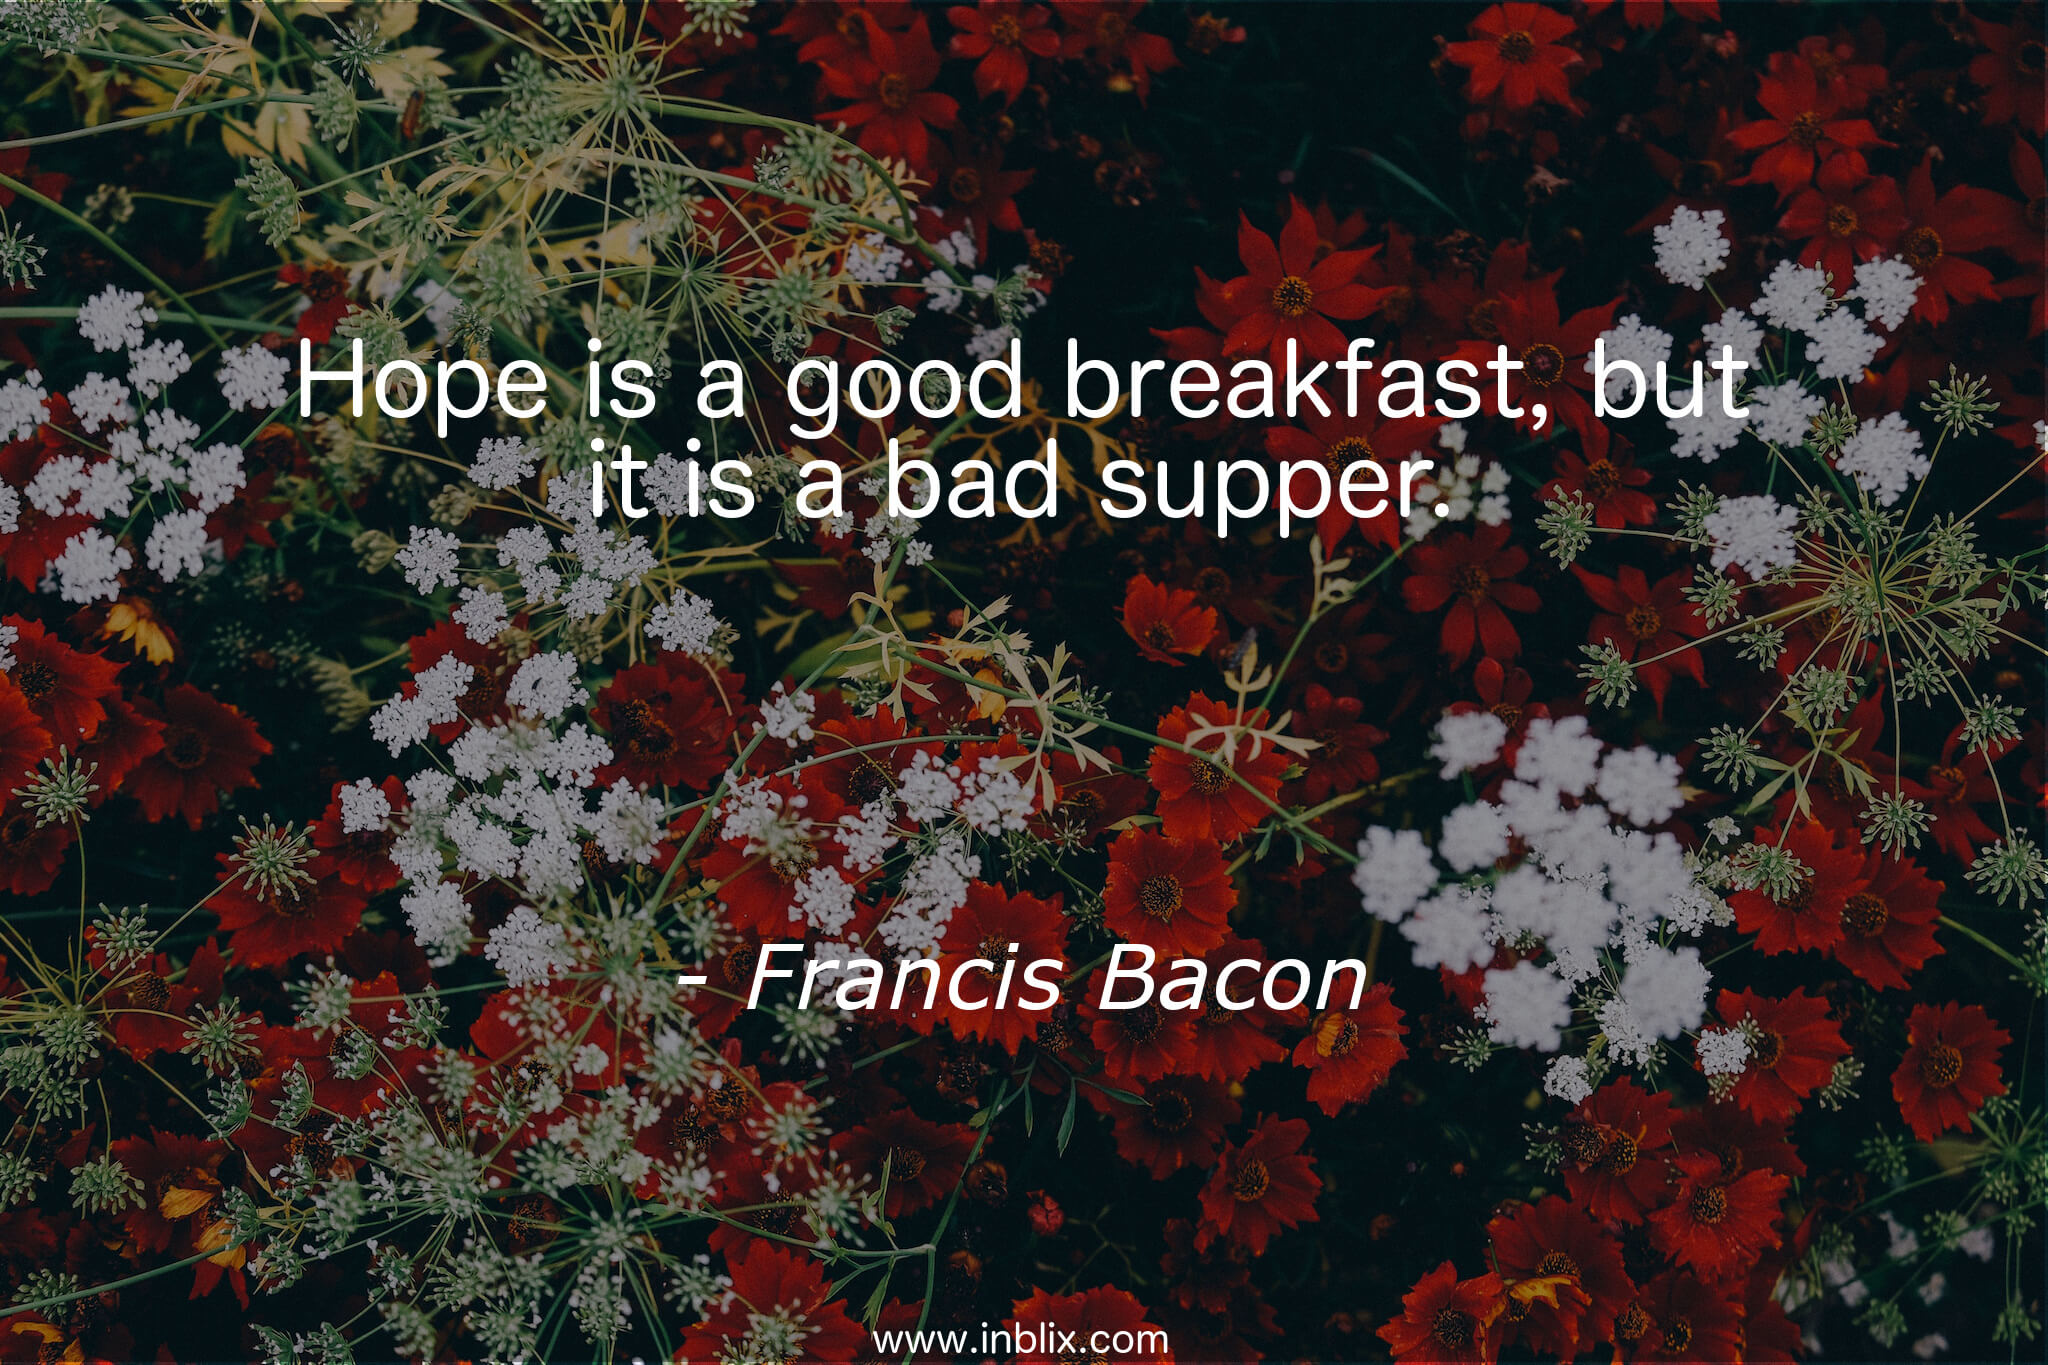 Hope is a good breakfast, but it is a bad supper.